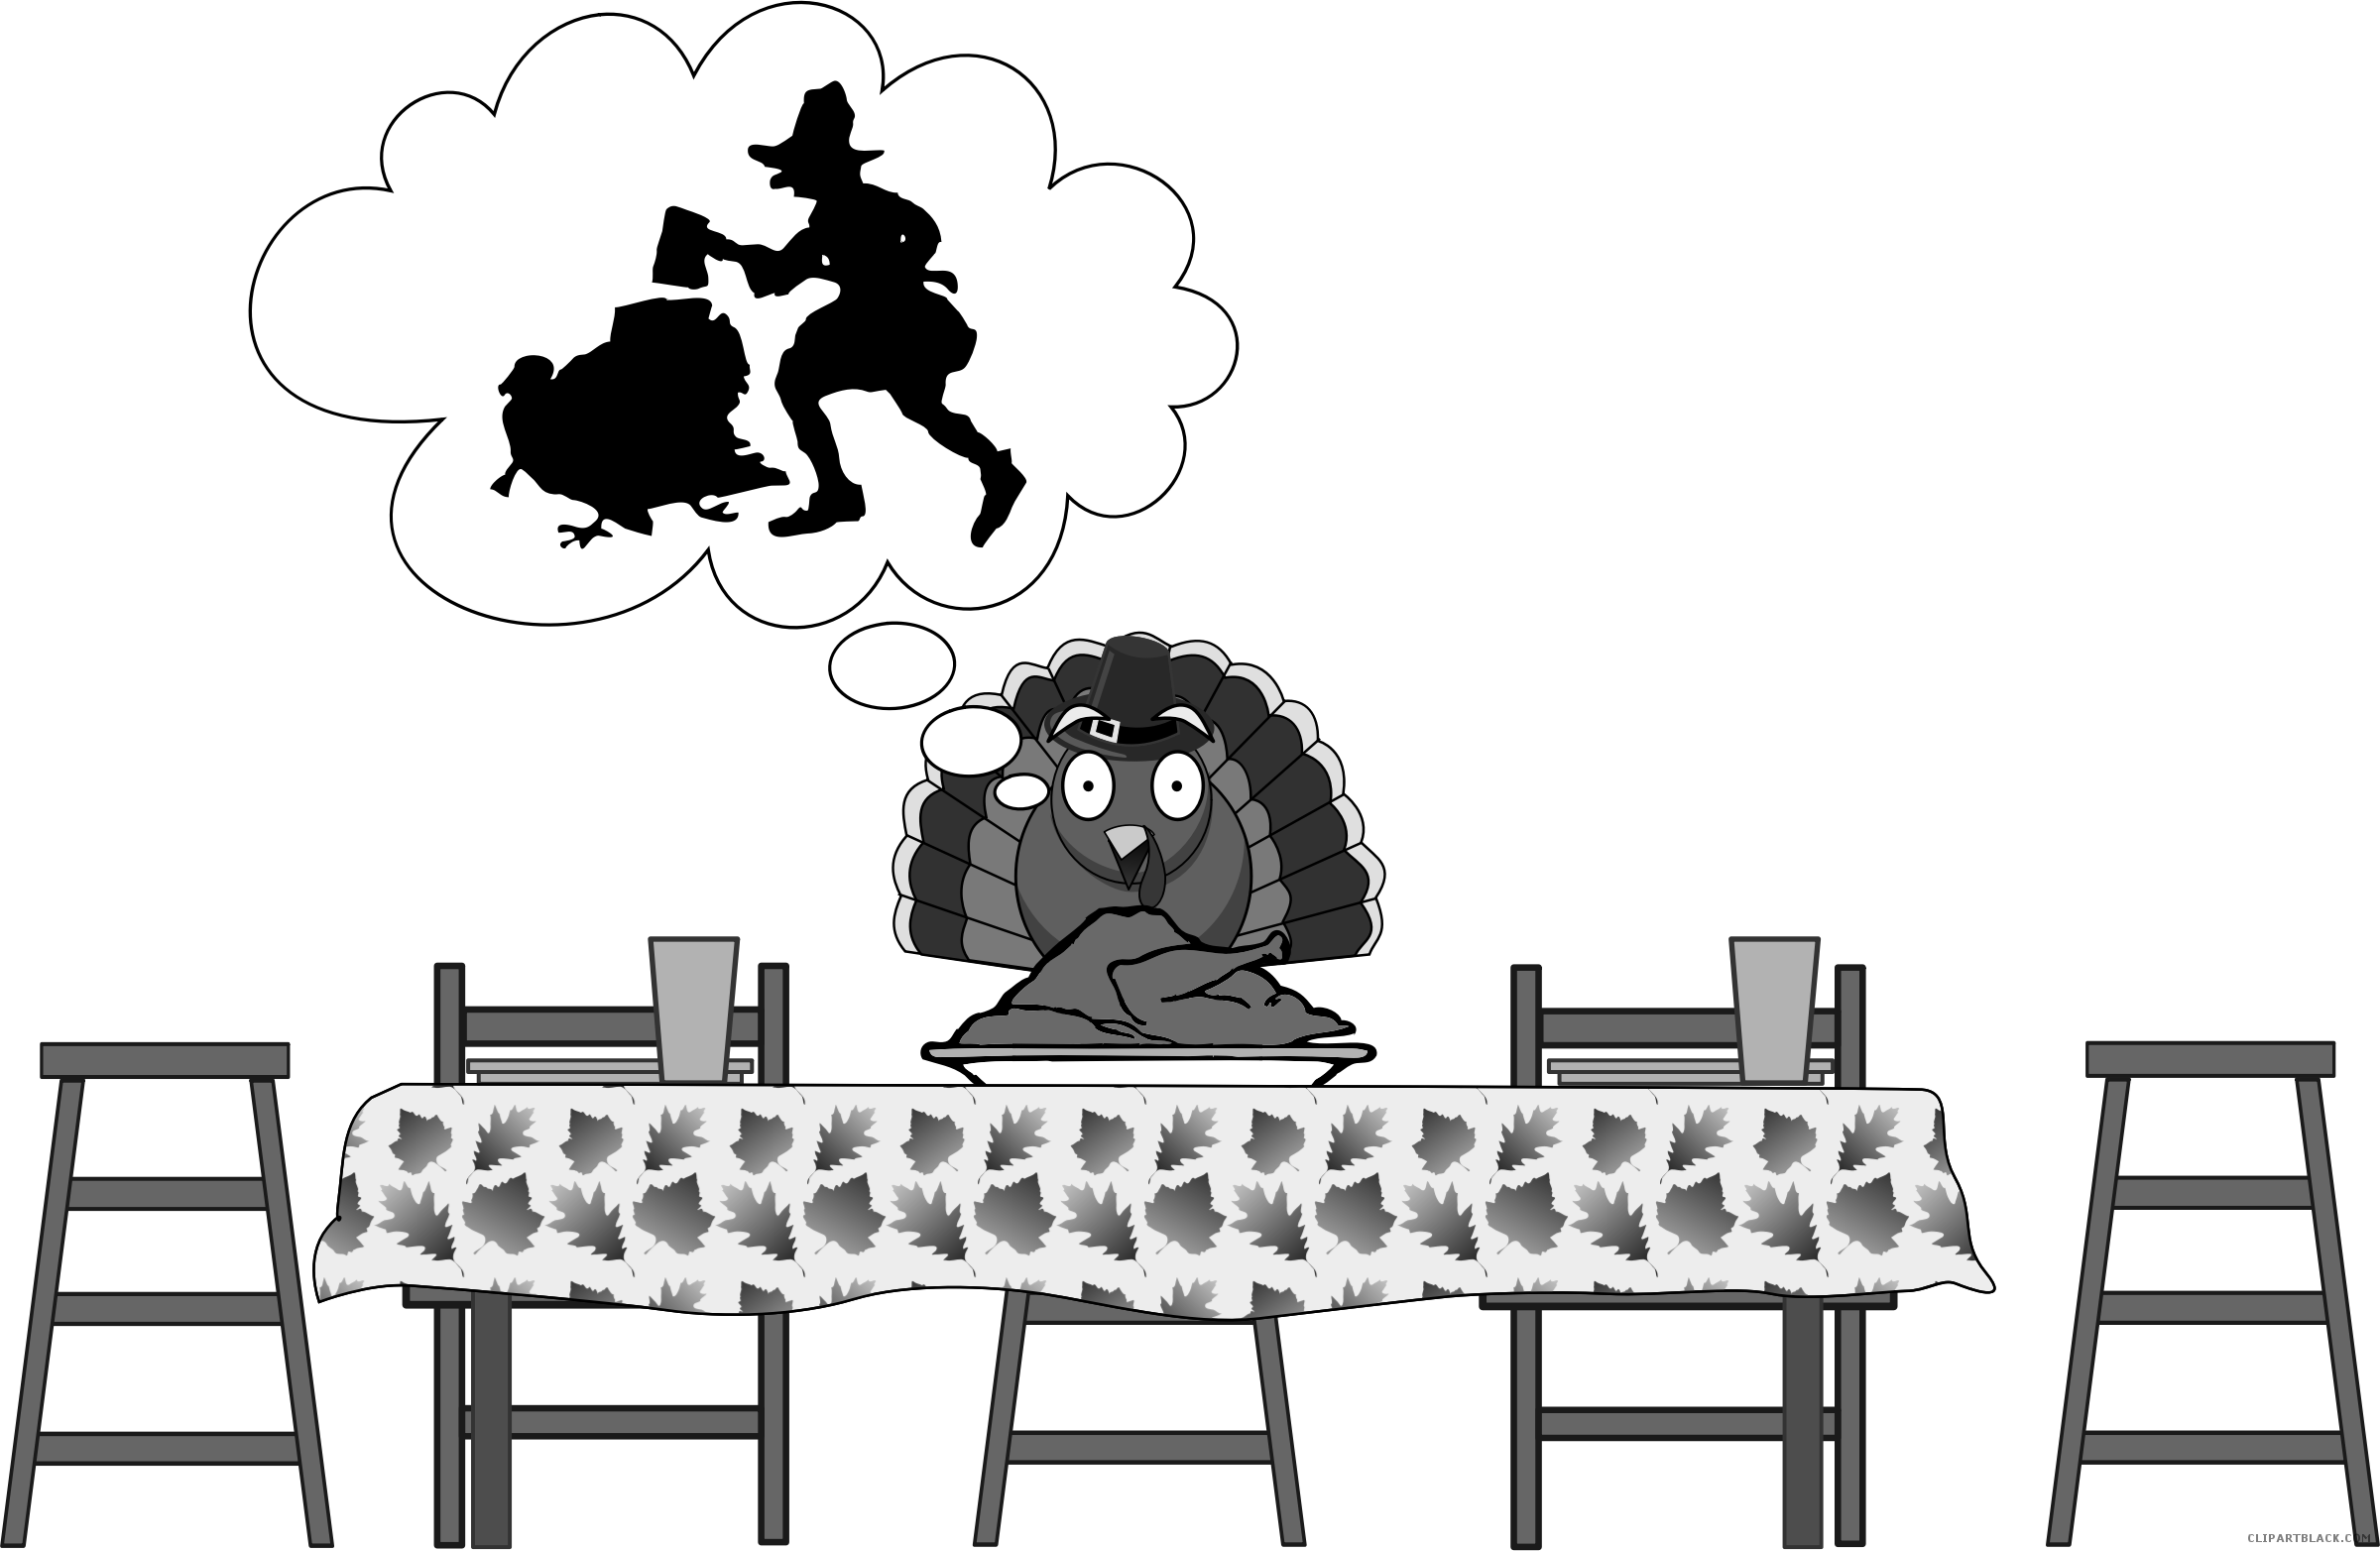 Turkey trot clipart free black and white png freeuse download Turkey - Page 3 of 17 - ClipartBlack.com png freeuse download